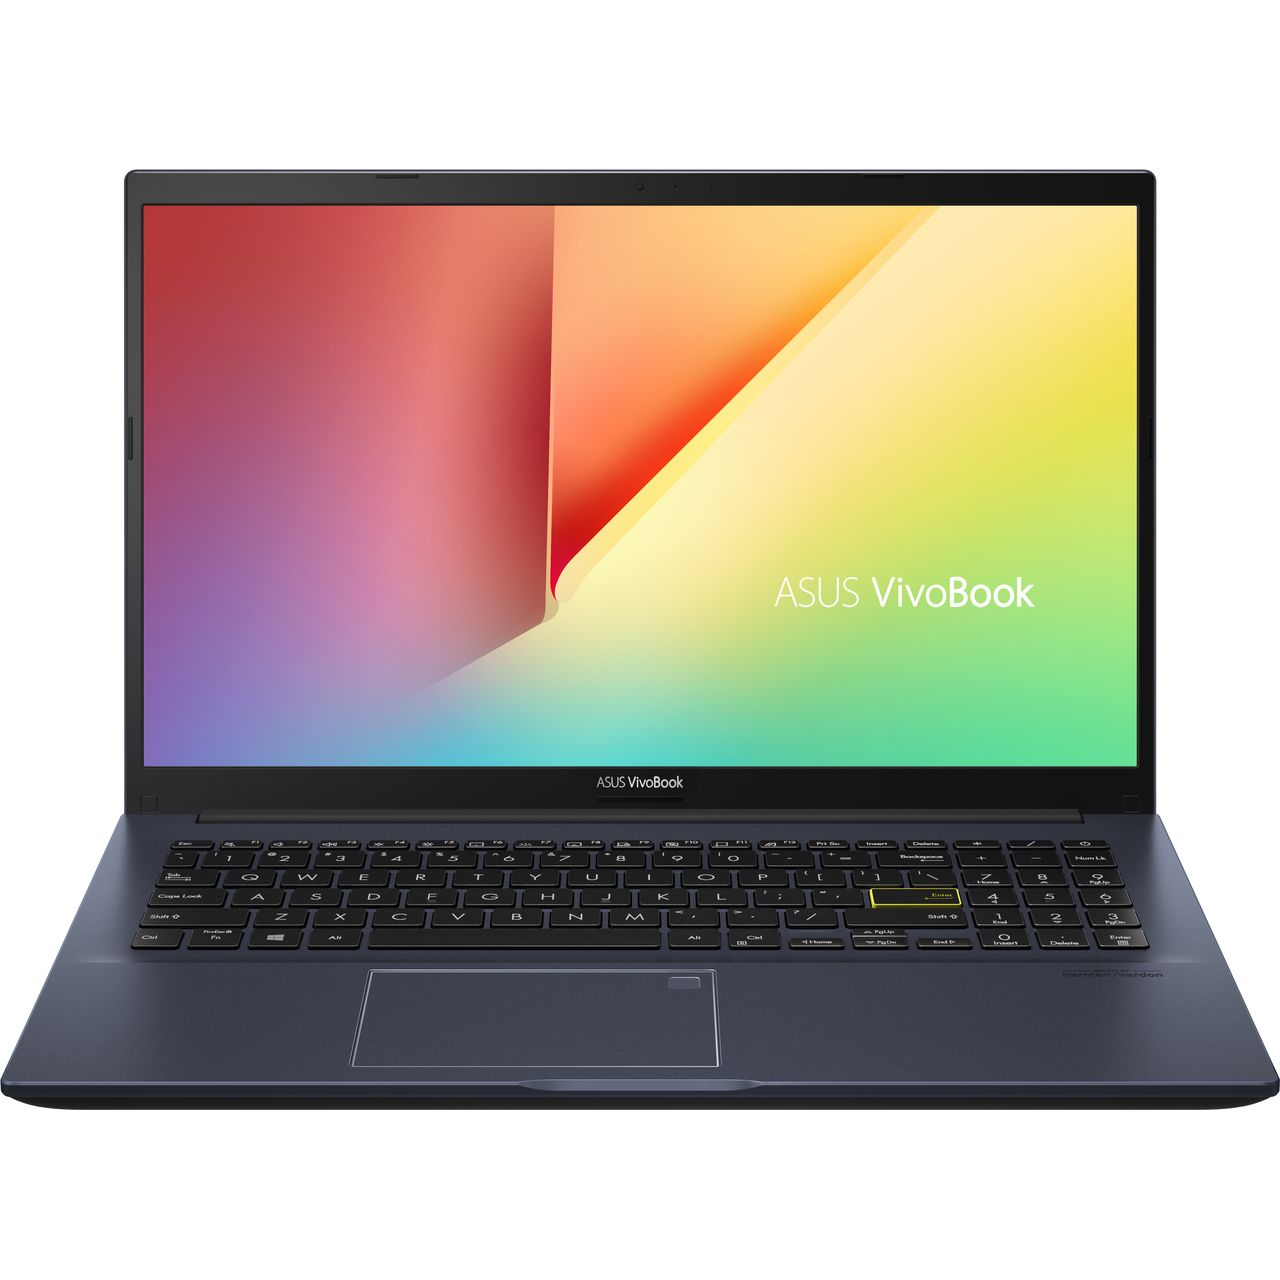 Asus Vivobook M513IA Laptop - Black